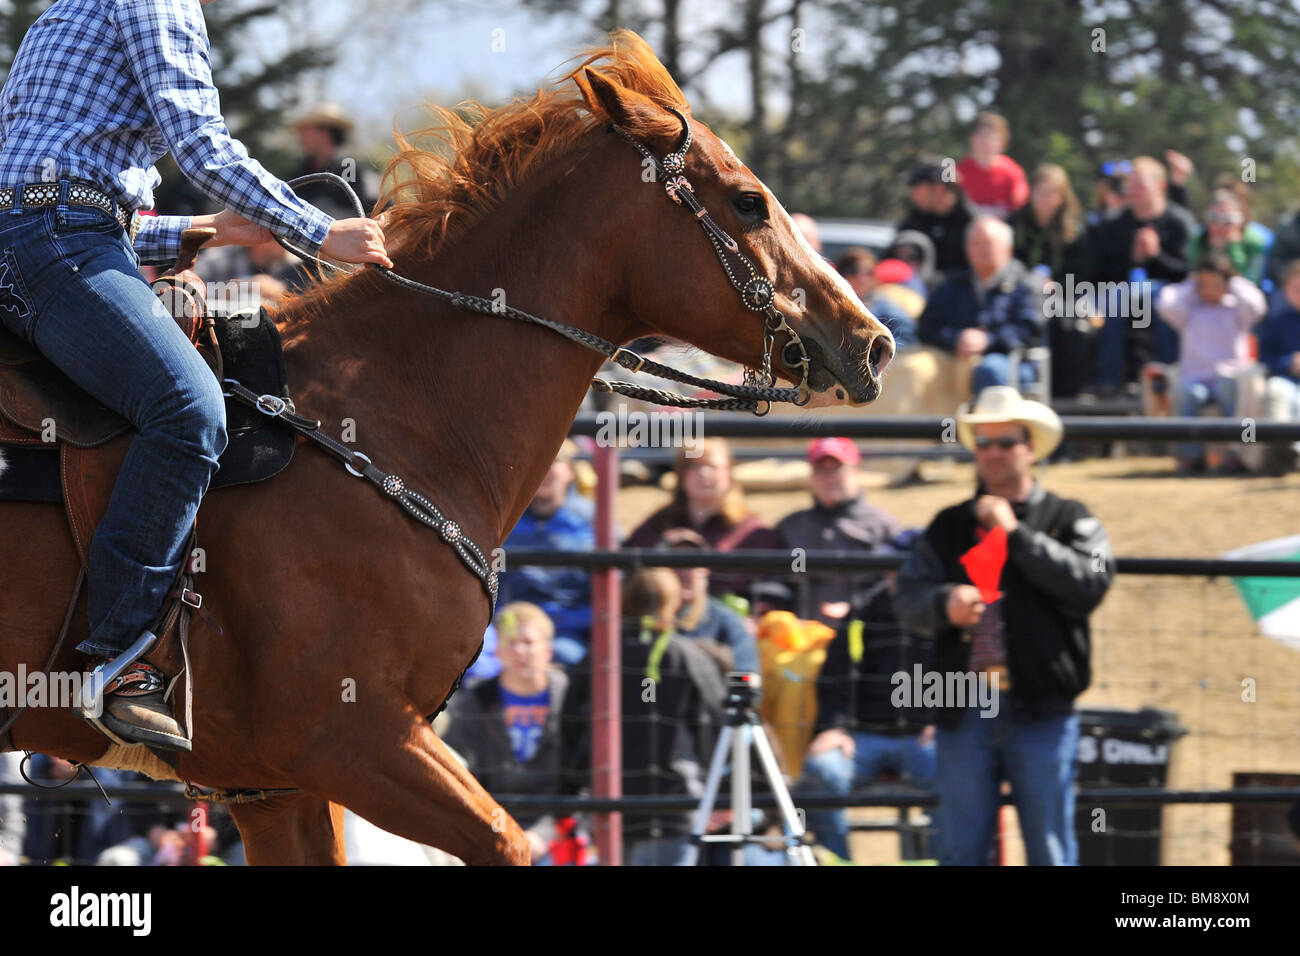 A close up image of a barrel racing horse crossing the timed finish line - Stock Image